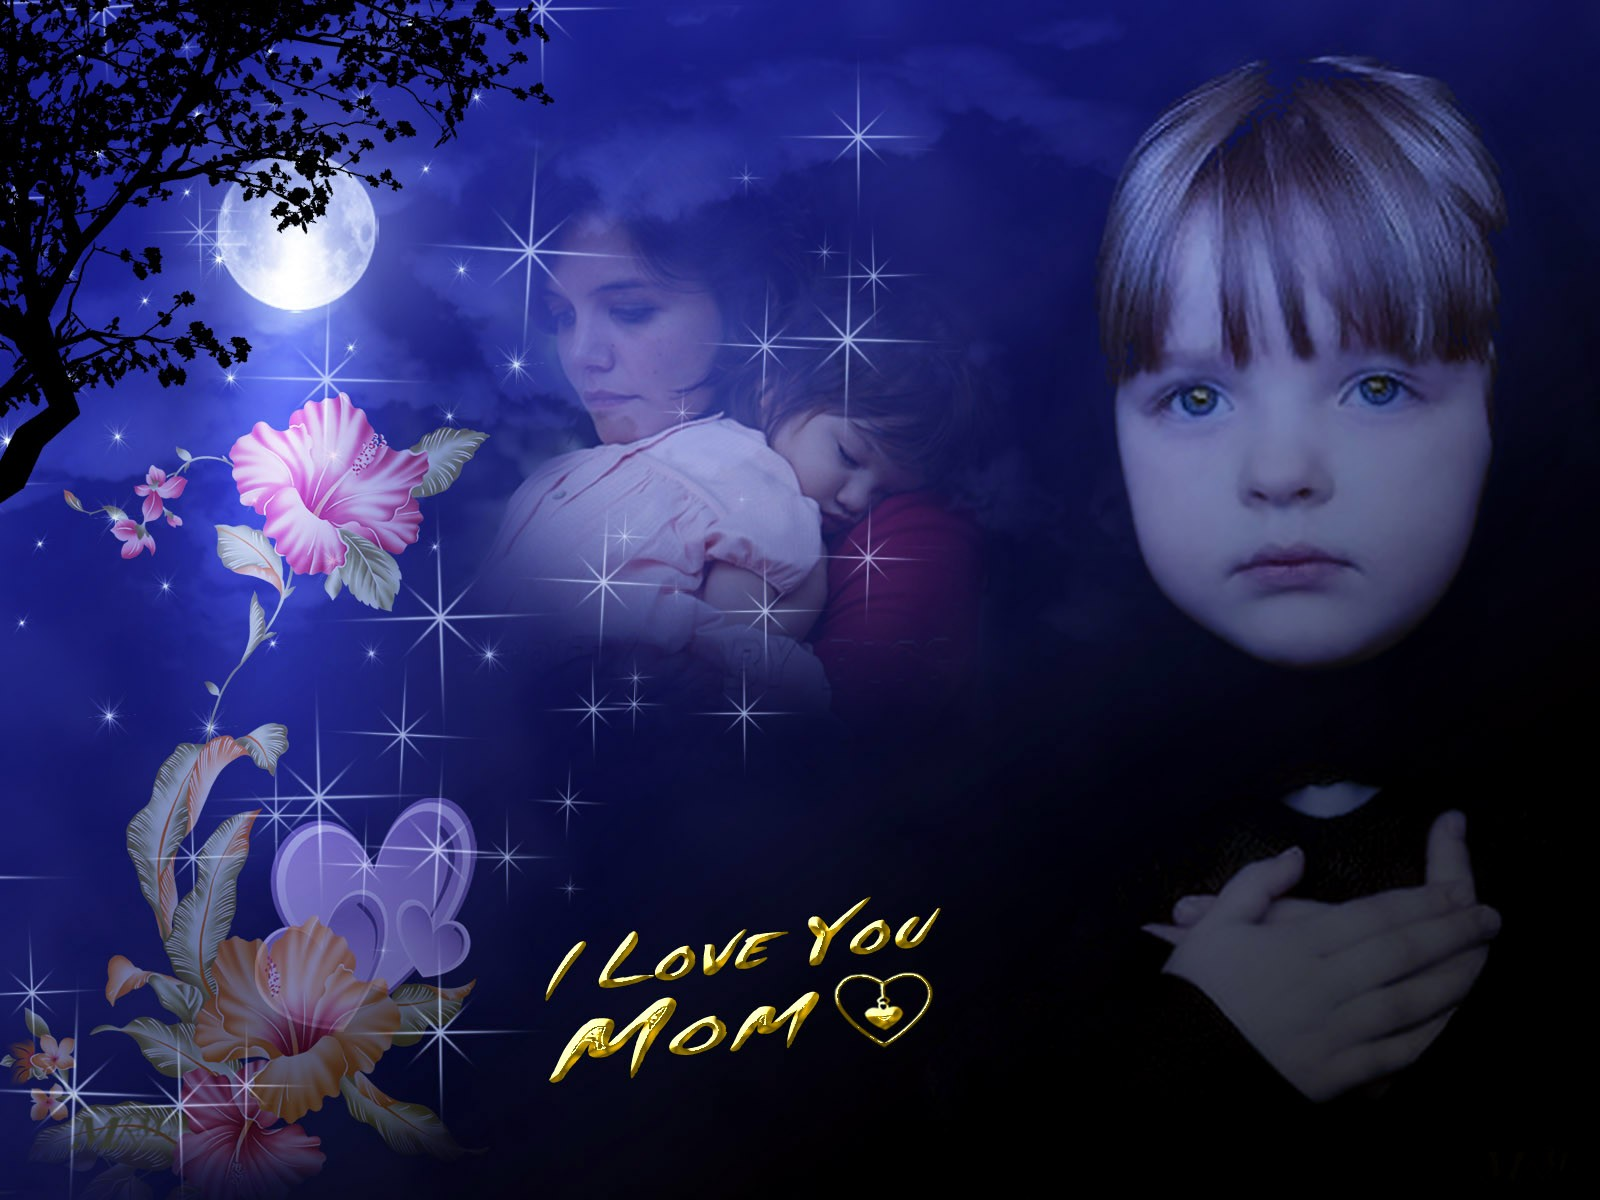 http://2.bp.blogspot.com/_-ej2nIqR7_A/S9ApjwWclGI/AAAAAAAACDc/Wq4gpR51H4E/s1600/I-Love-You-Mom-Wallpaper.jpg